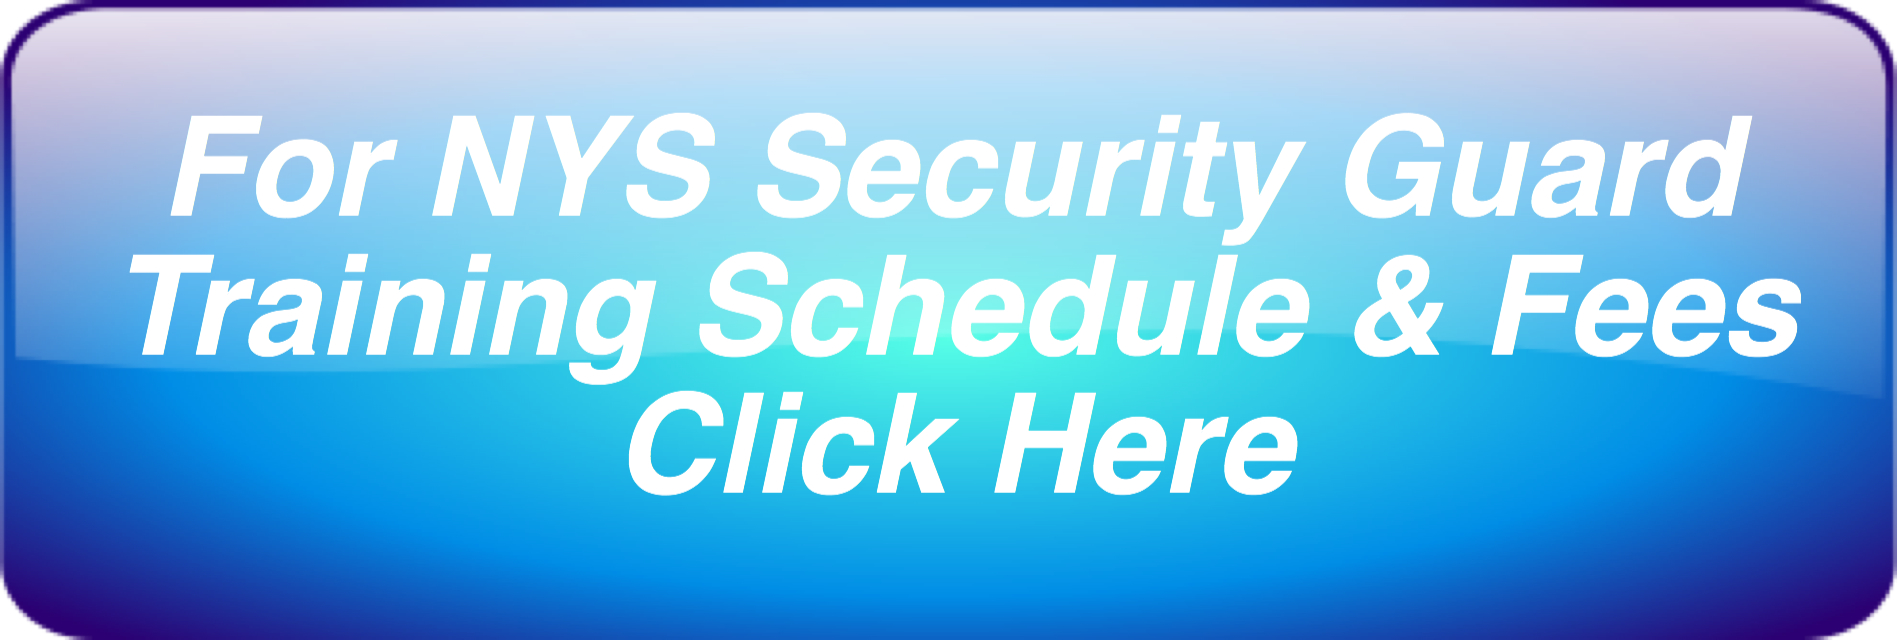 security guard school schedule